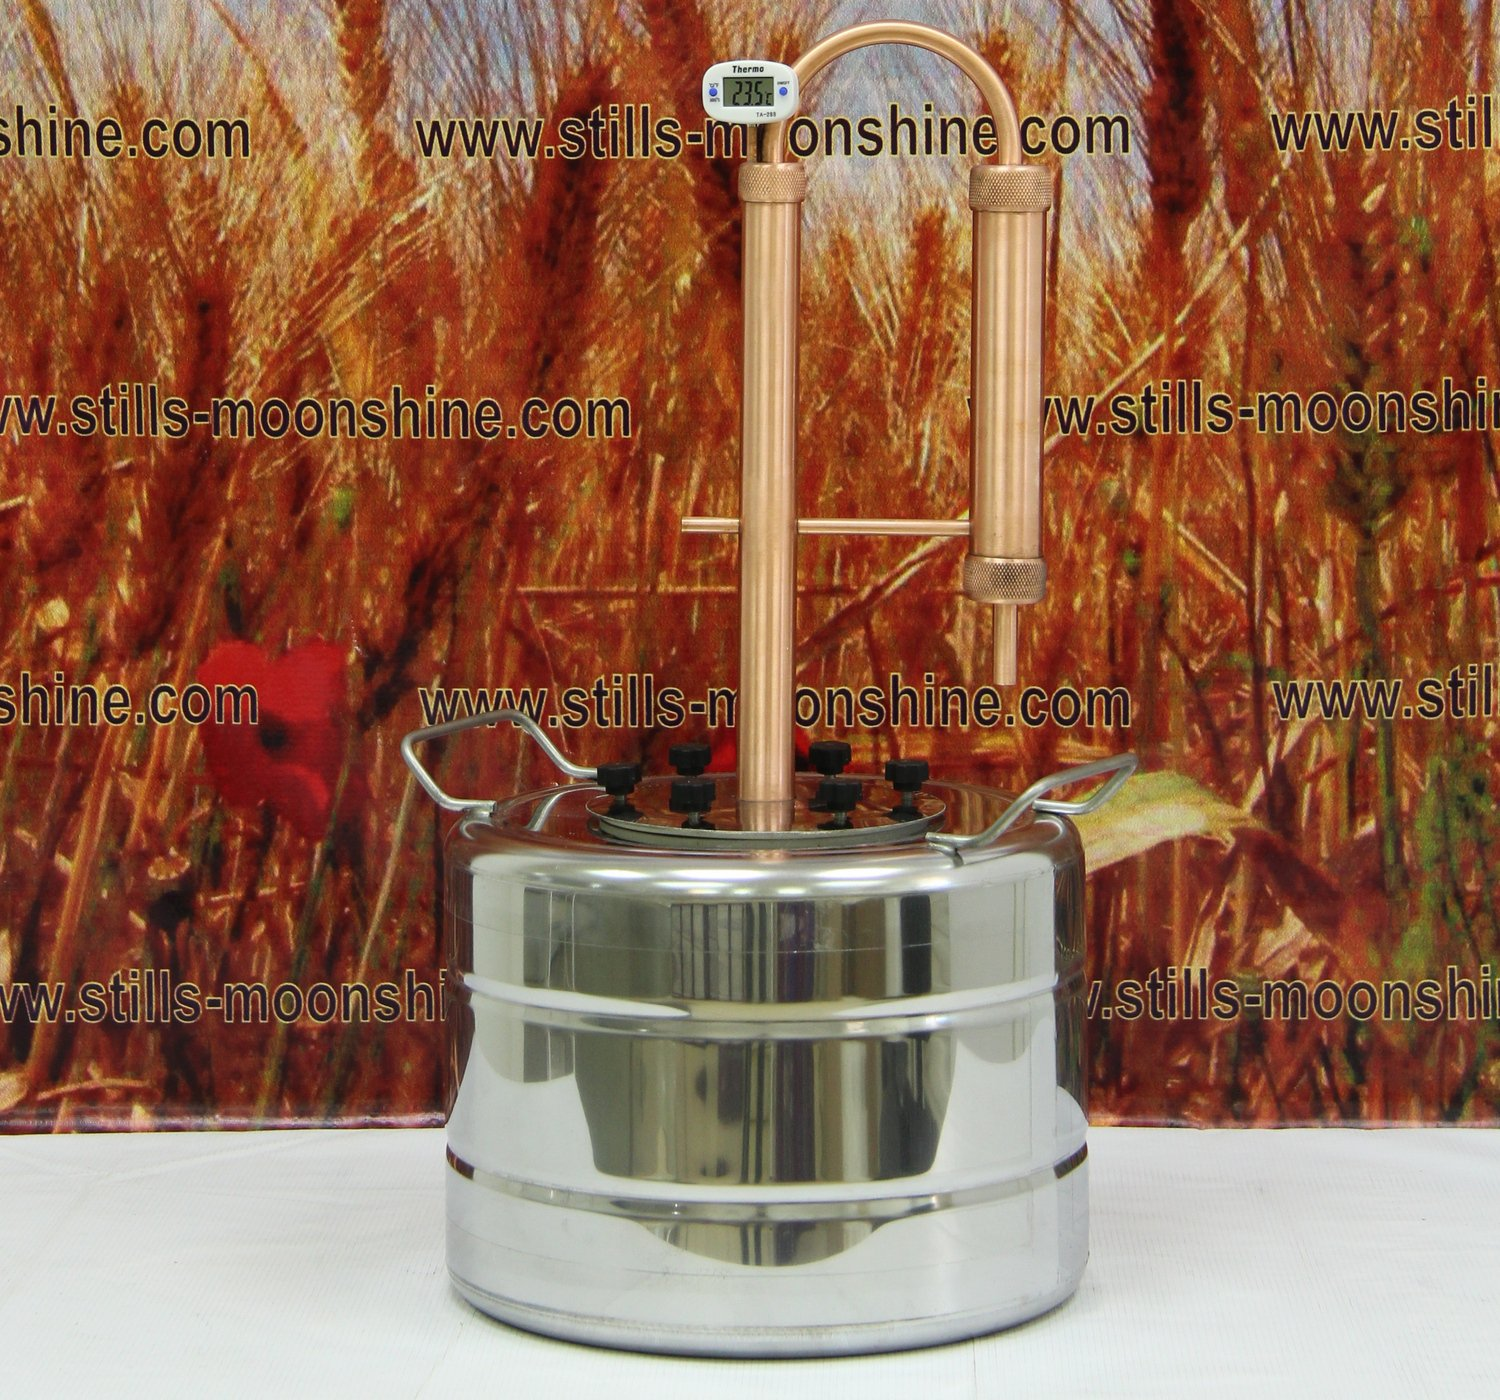 Moonshine distiller OMEGA